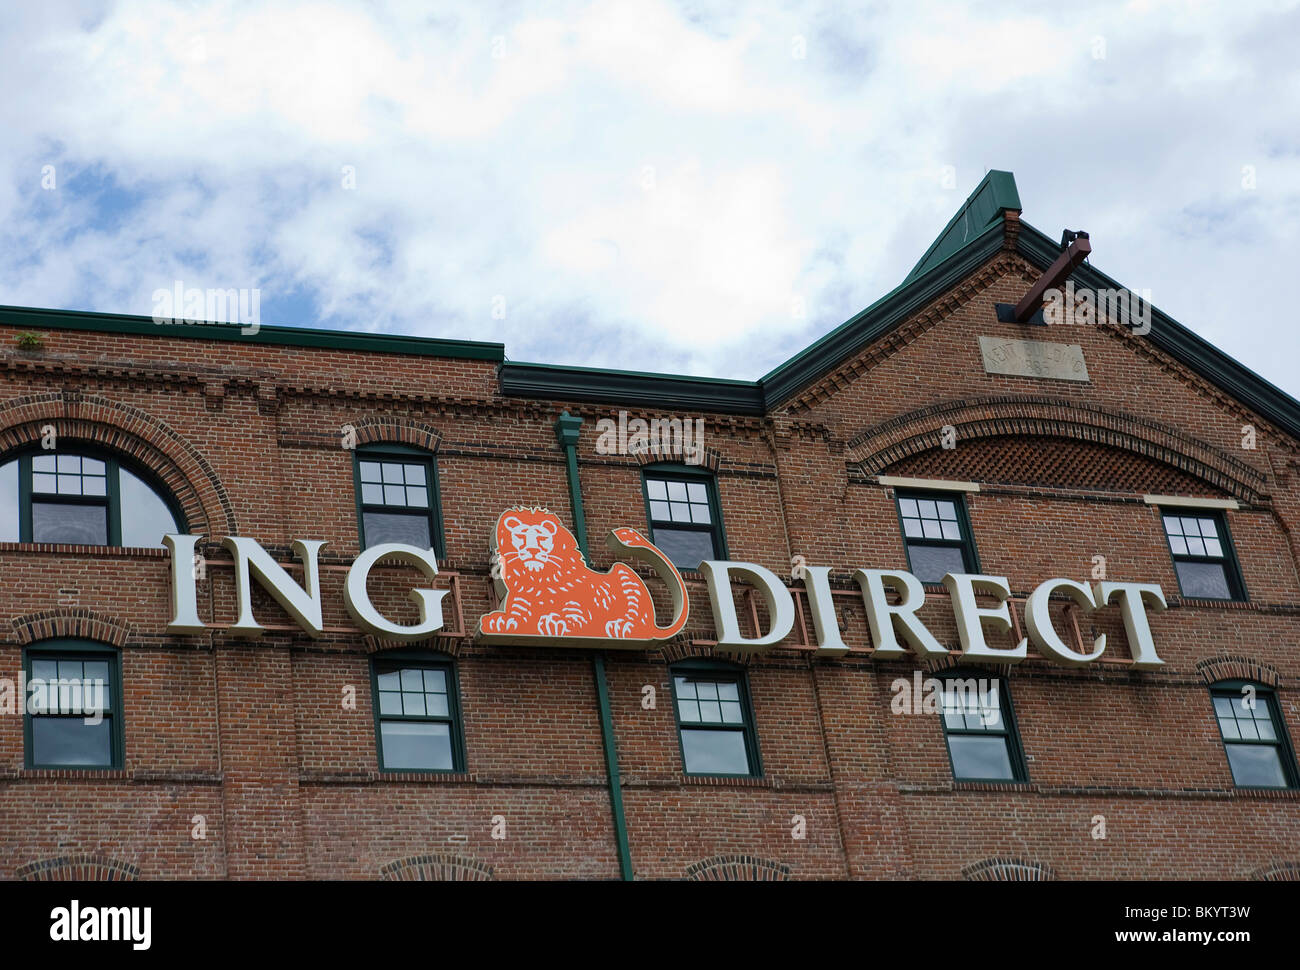 A ING Direct Bank building.  - Stock Image